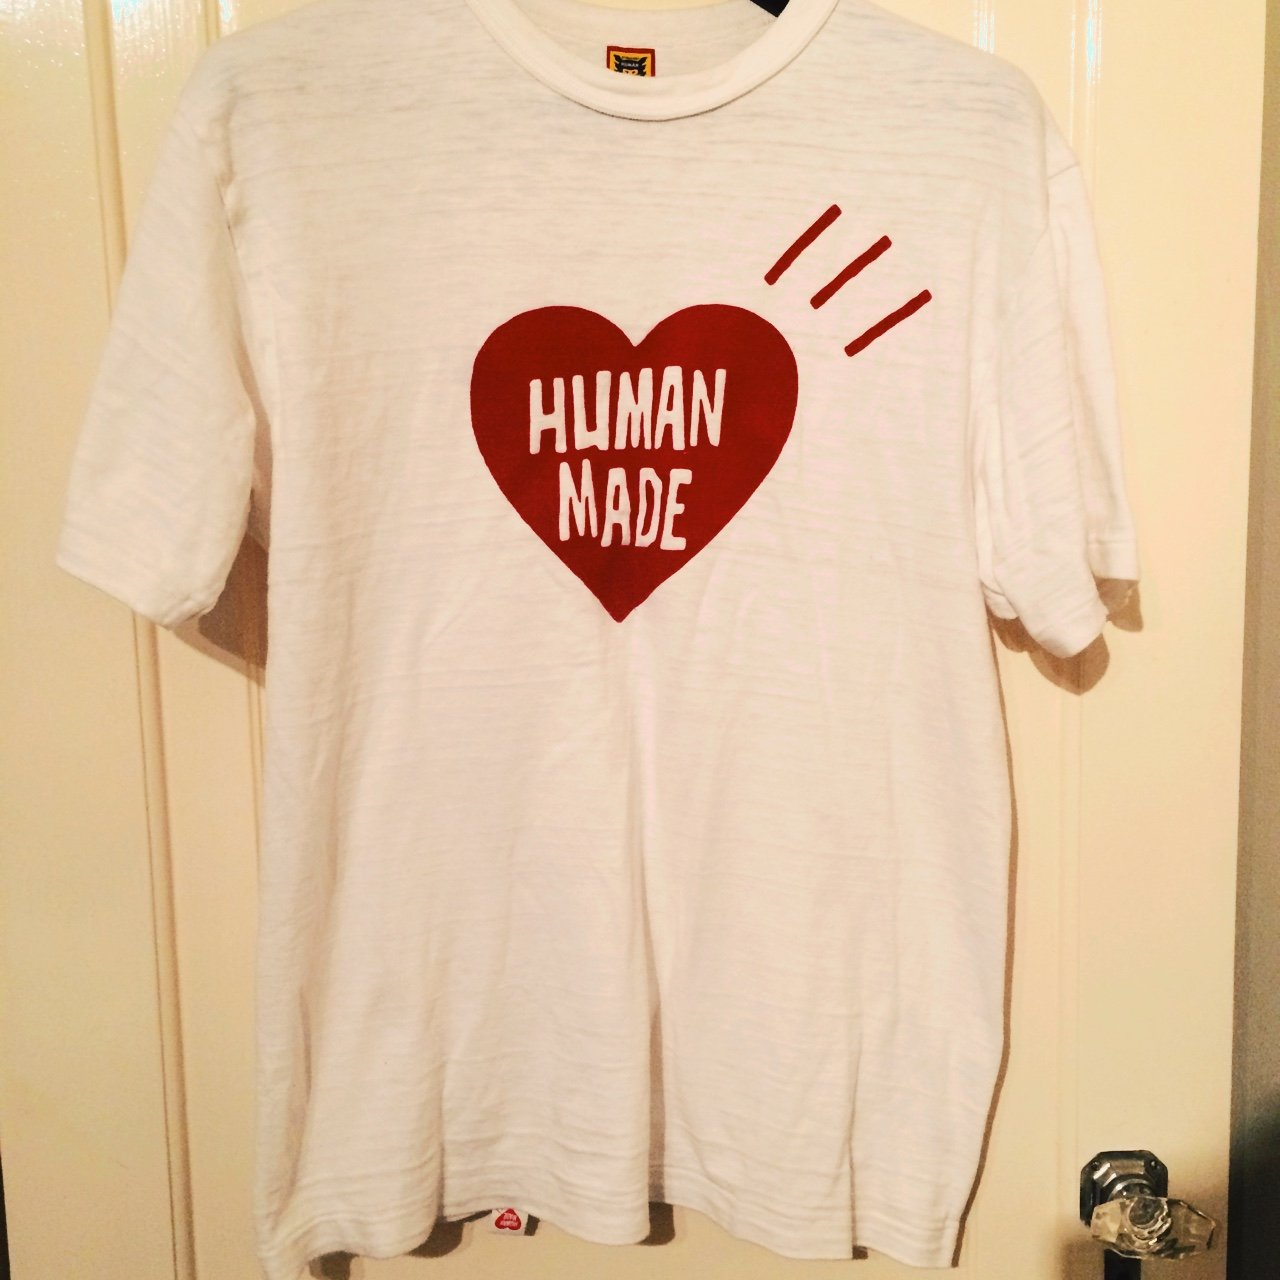 A Classic Human Made Tee Disappointed To Sell It But It On Depop